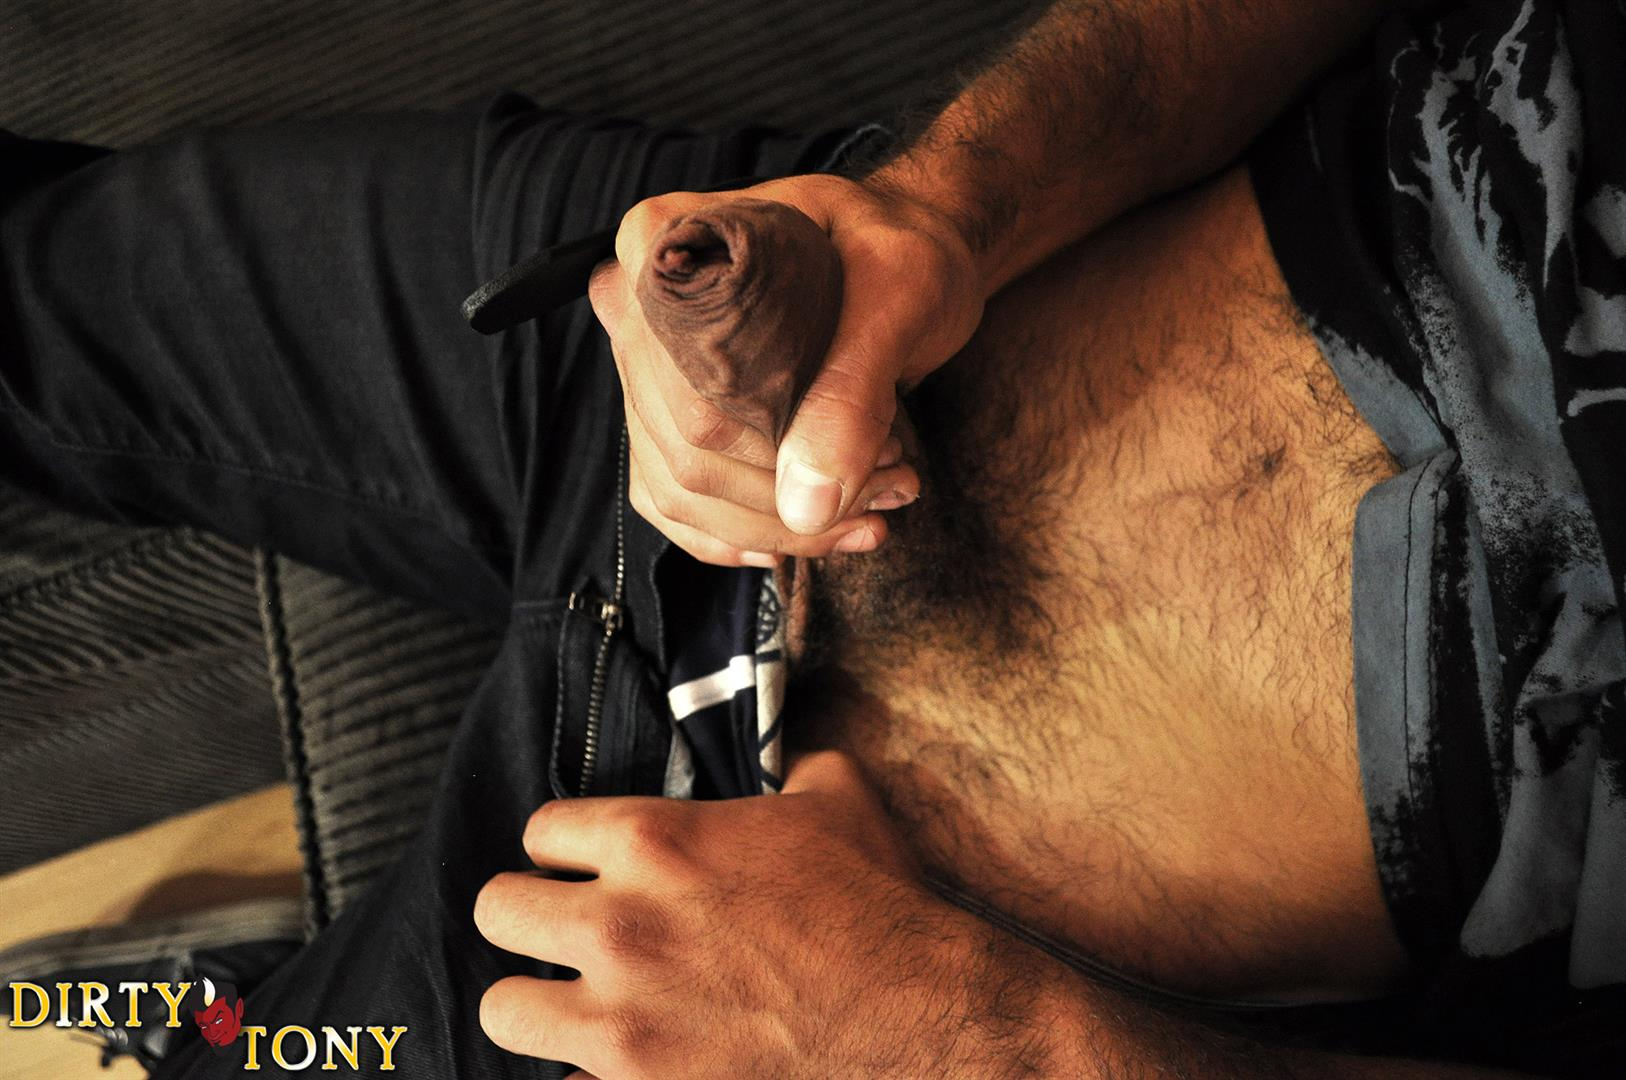 Dirty Tony ALEX CANON Hairy Muscle Guy Jerking A Huge Uncut Cock Amateur Gay Porn 03 Amateur Hairy Muscle Stud Playing With His Big Uncut Cock